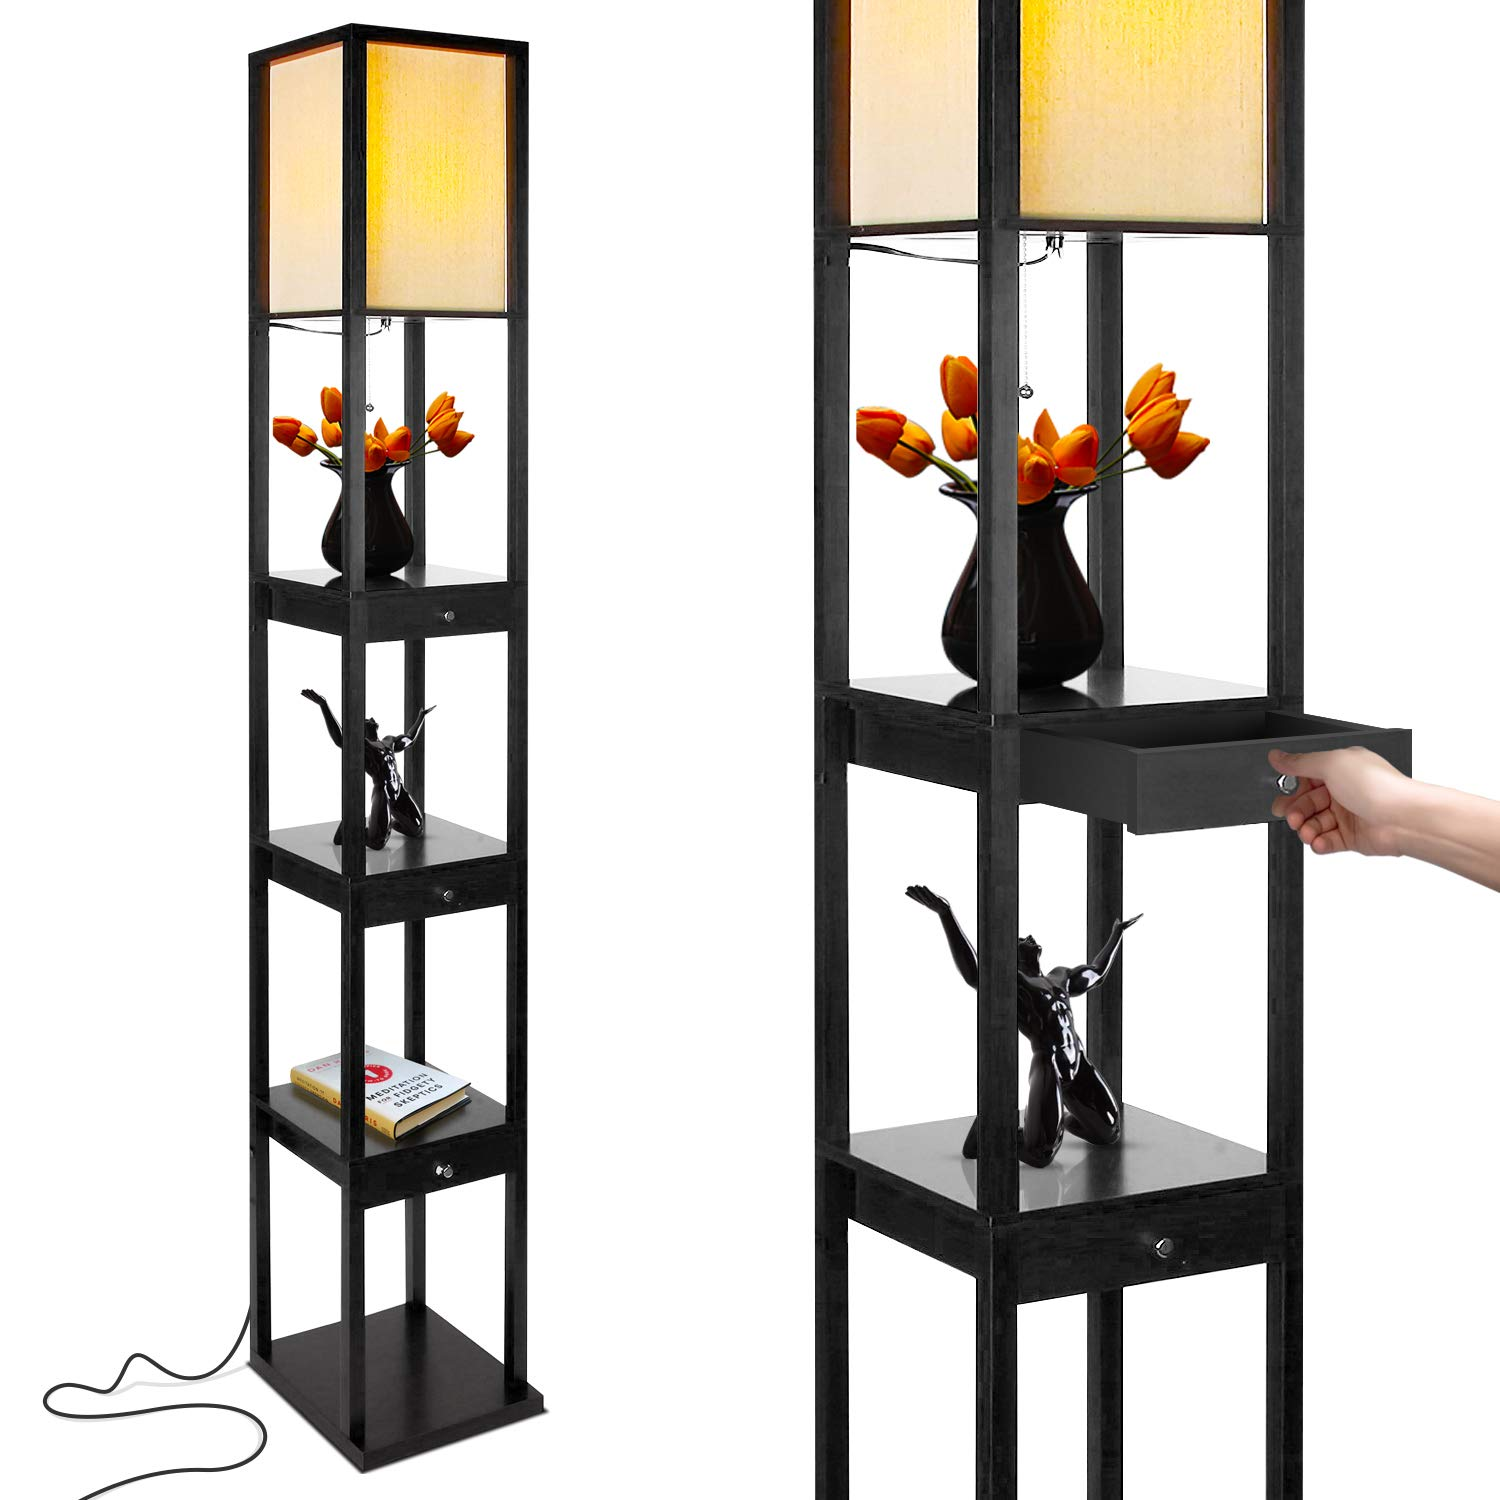 Brightech Maxwell Drawer Edition – Shelf LED Floor Lamp Combination – Modern Living Room Standing Light with Asian Display Shelves – Classic Black